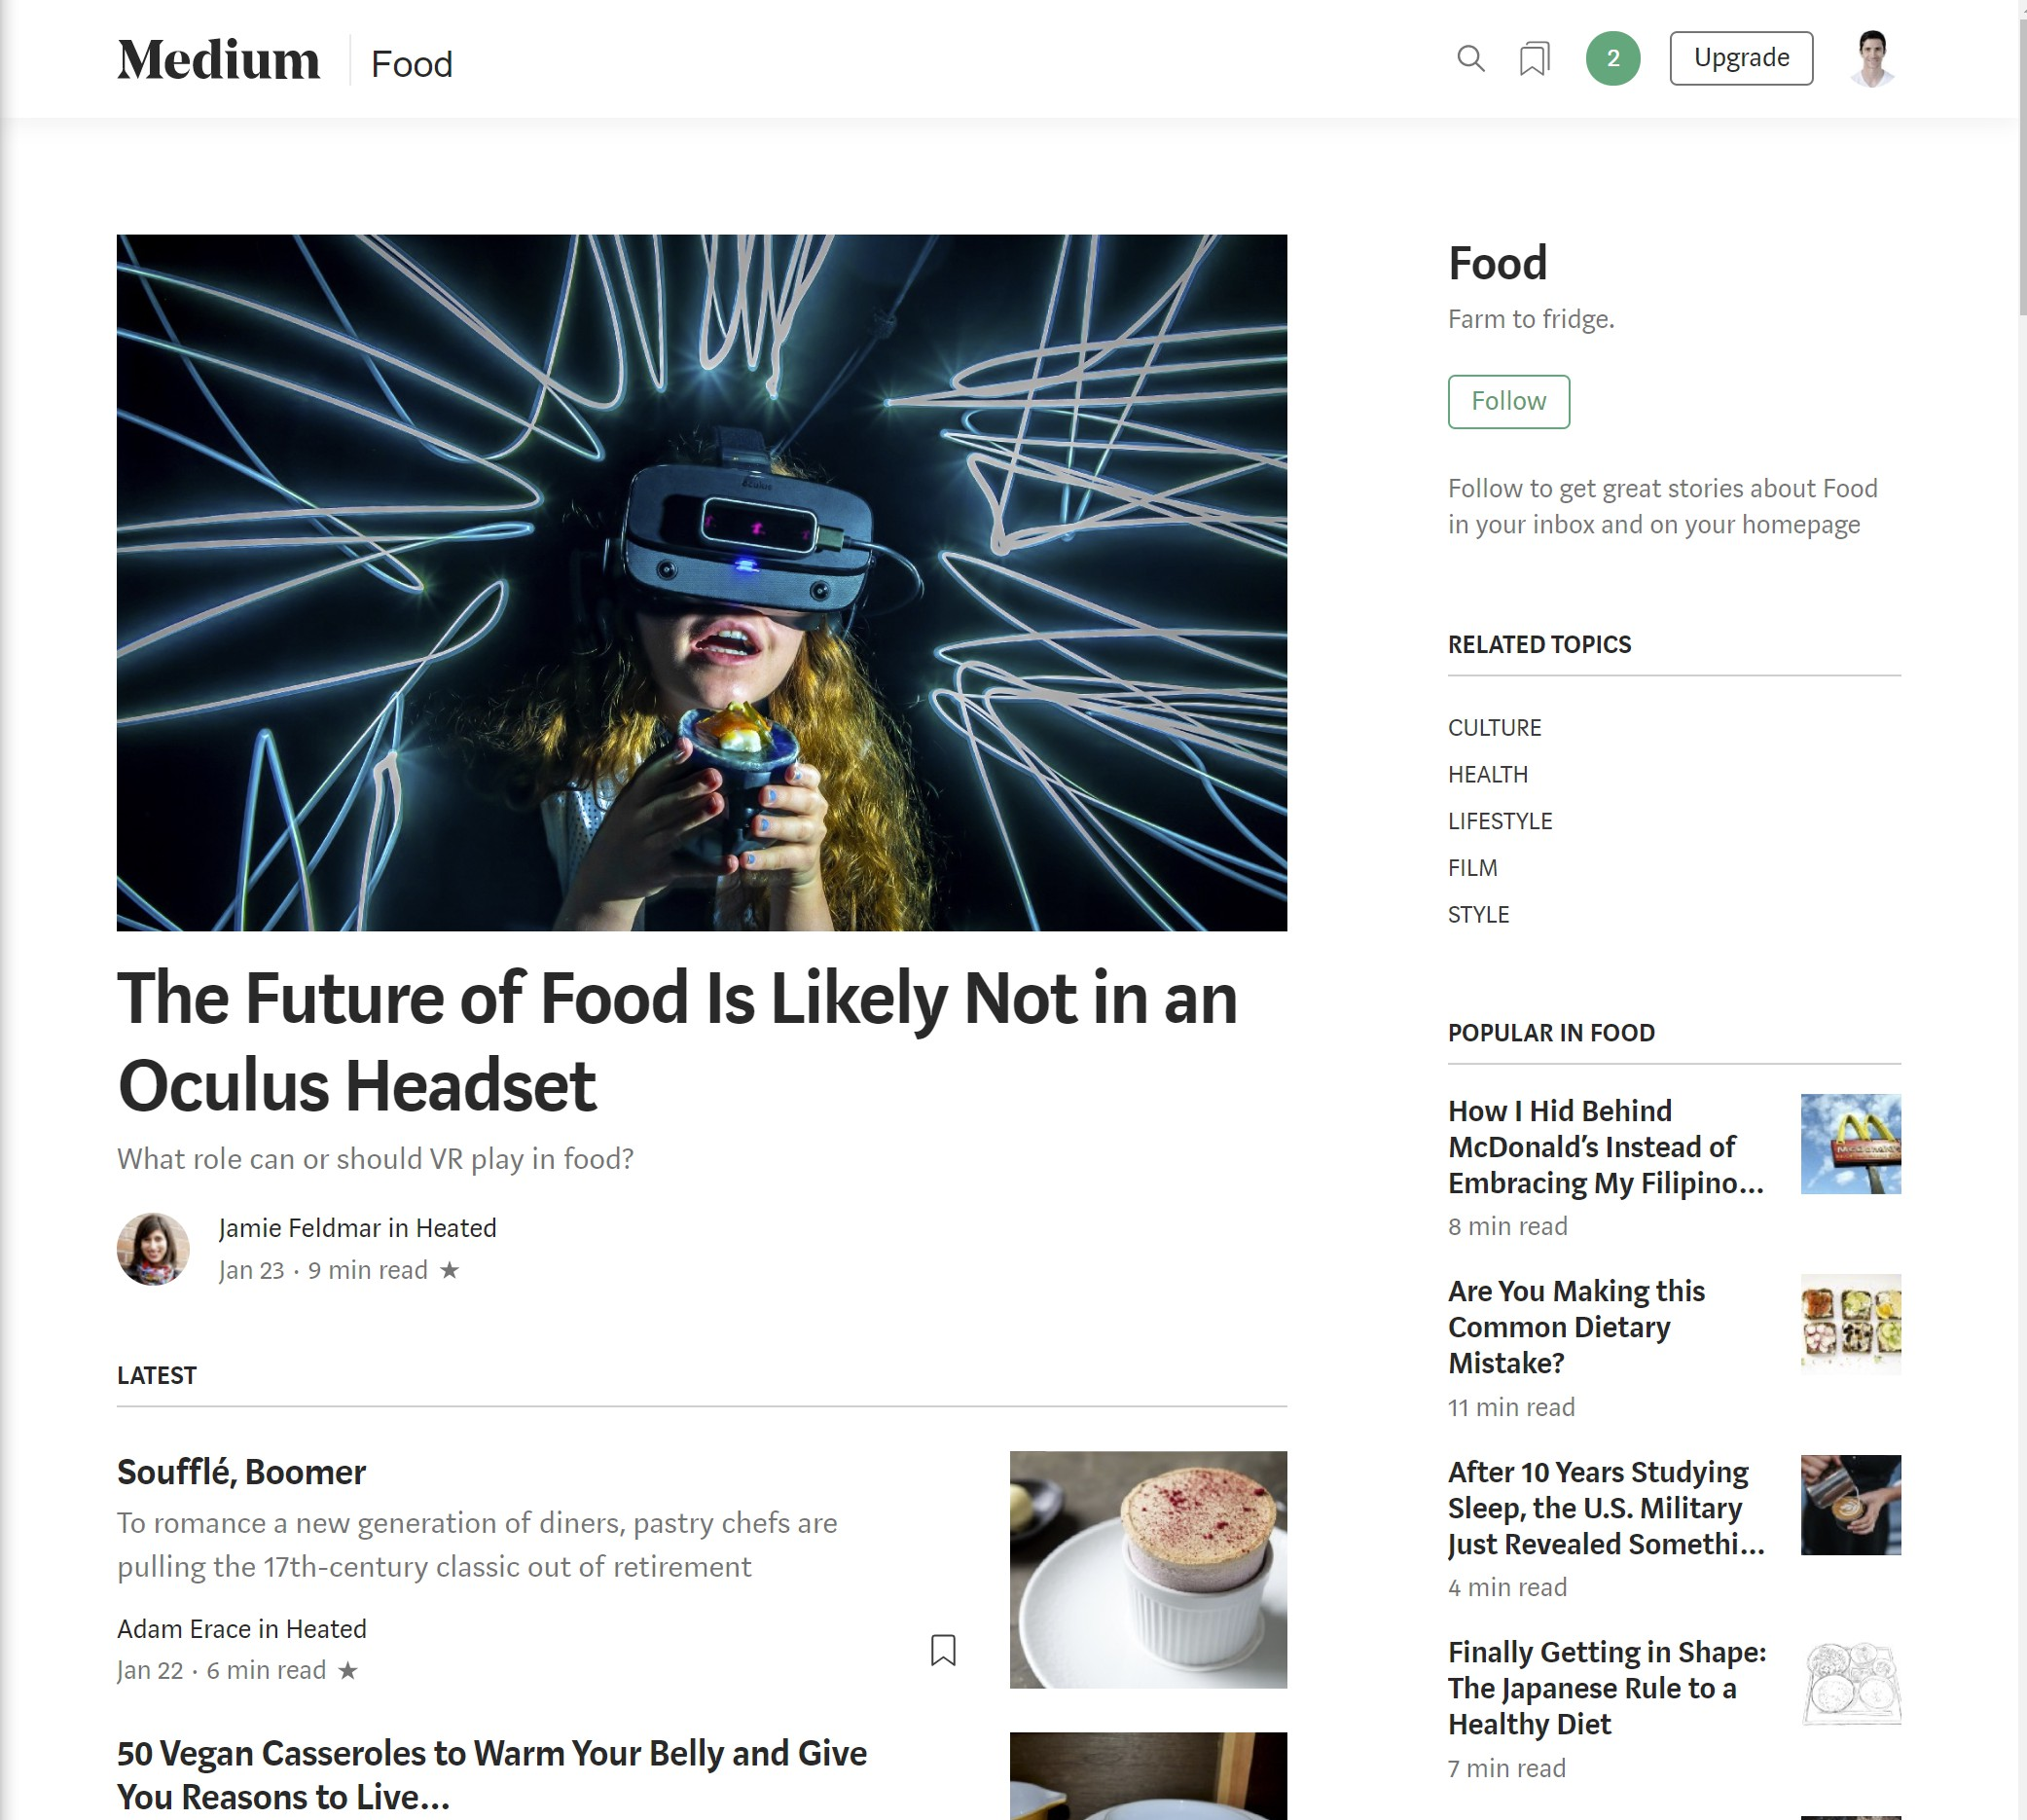 An example of a Topic on Medium